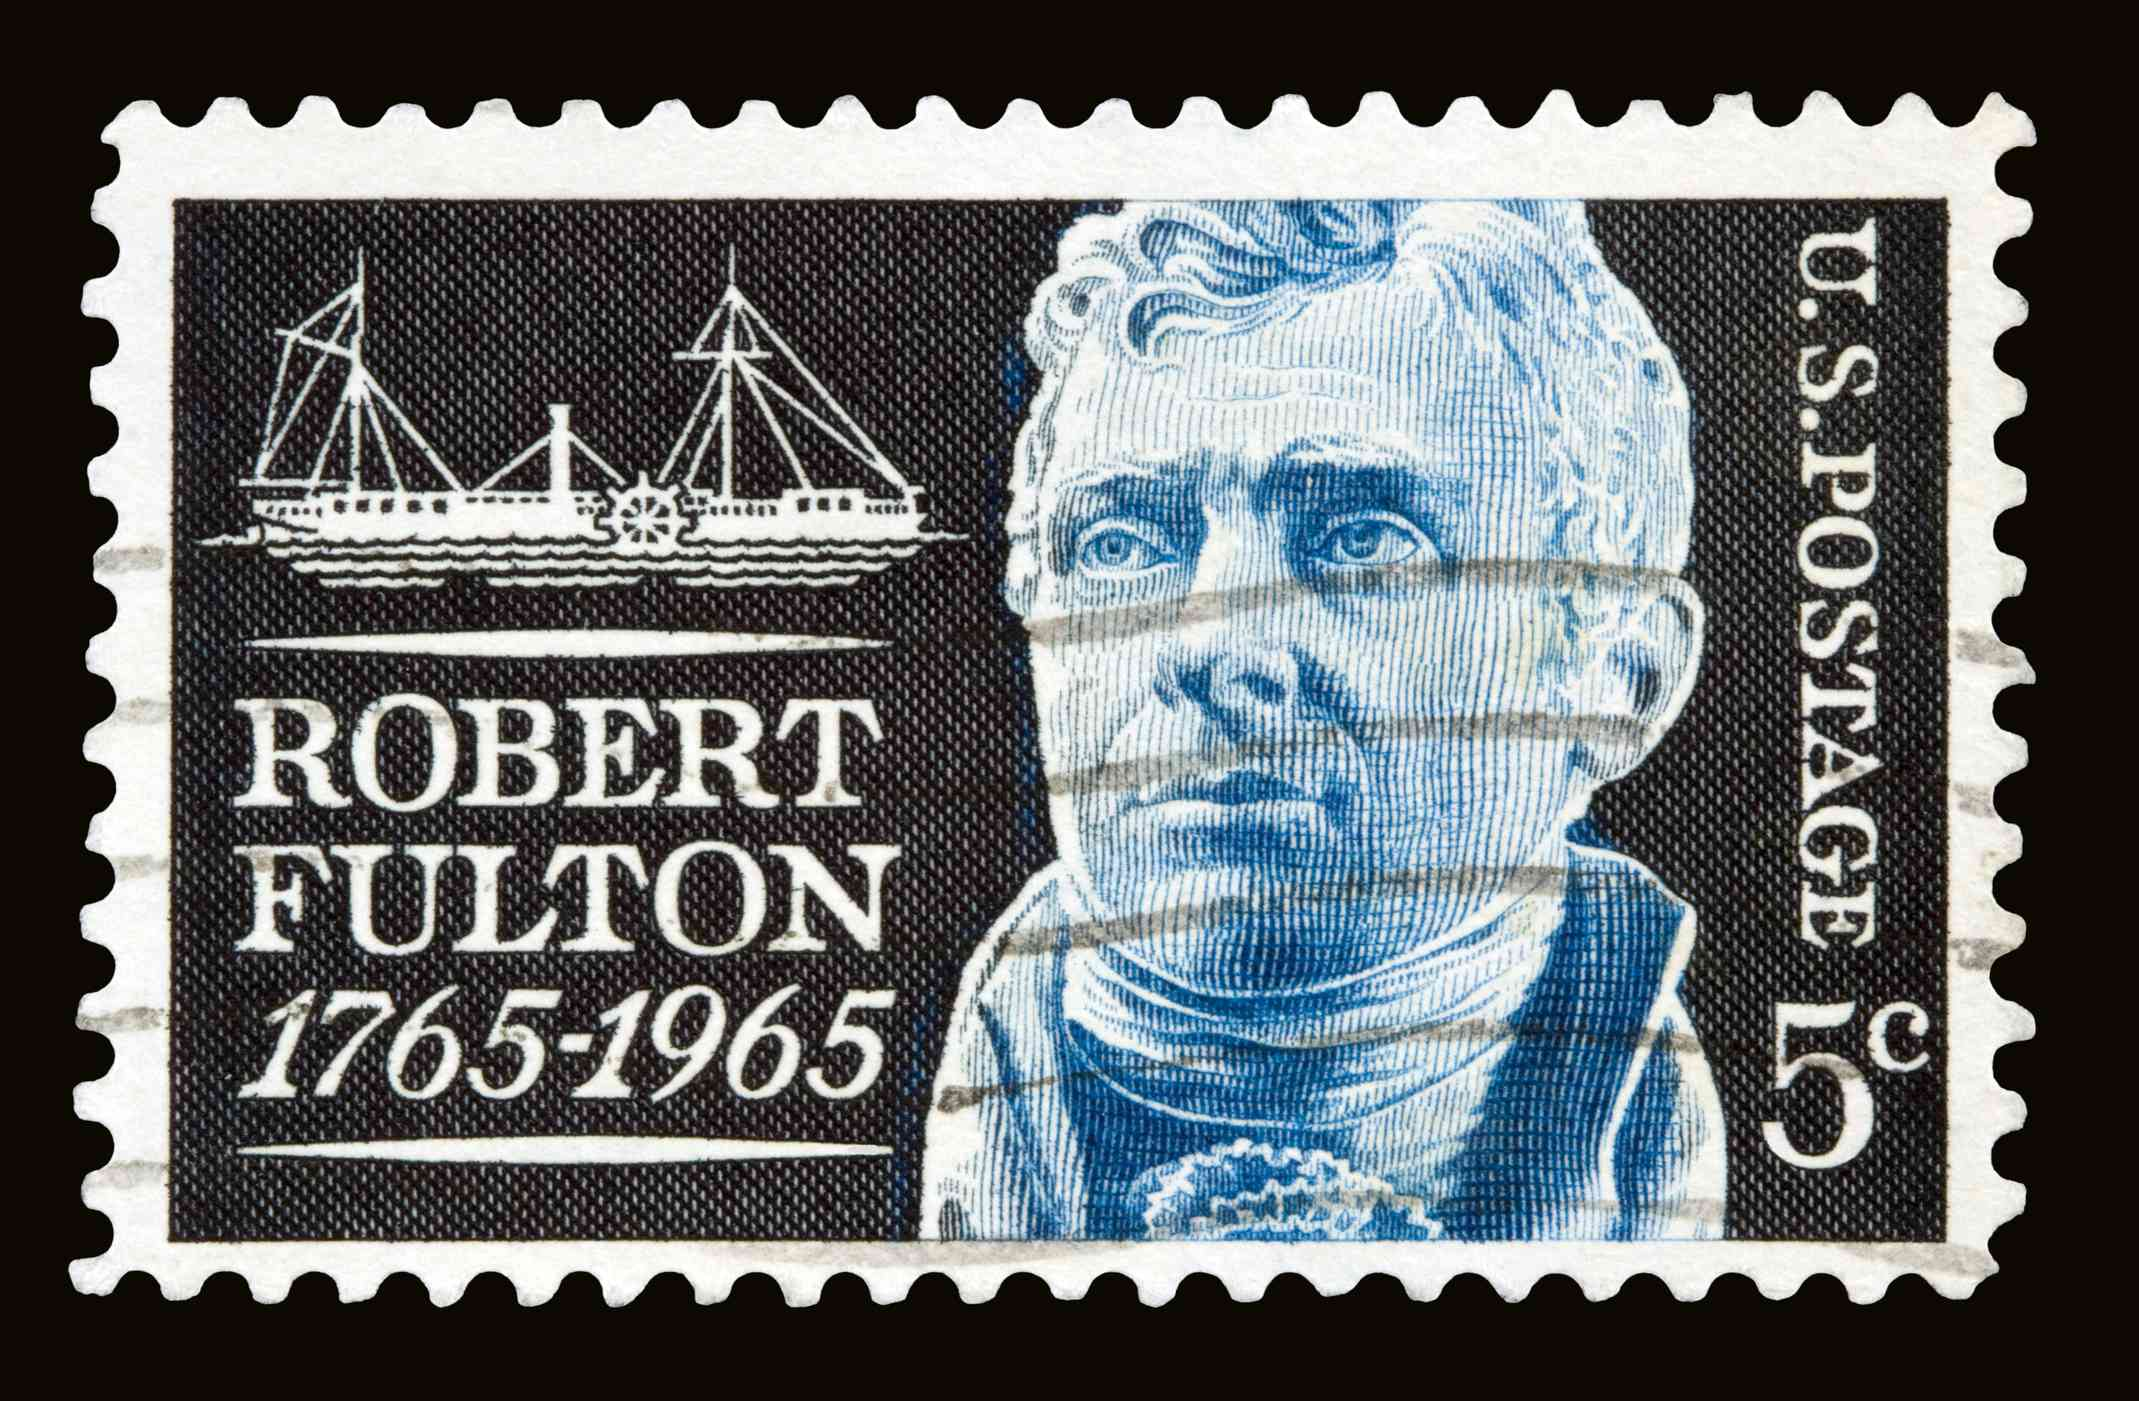 A 1965 issued 5 cent United States postage stamp showing American engineer Robert Fulton